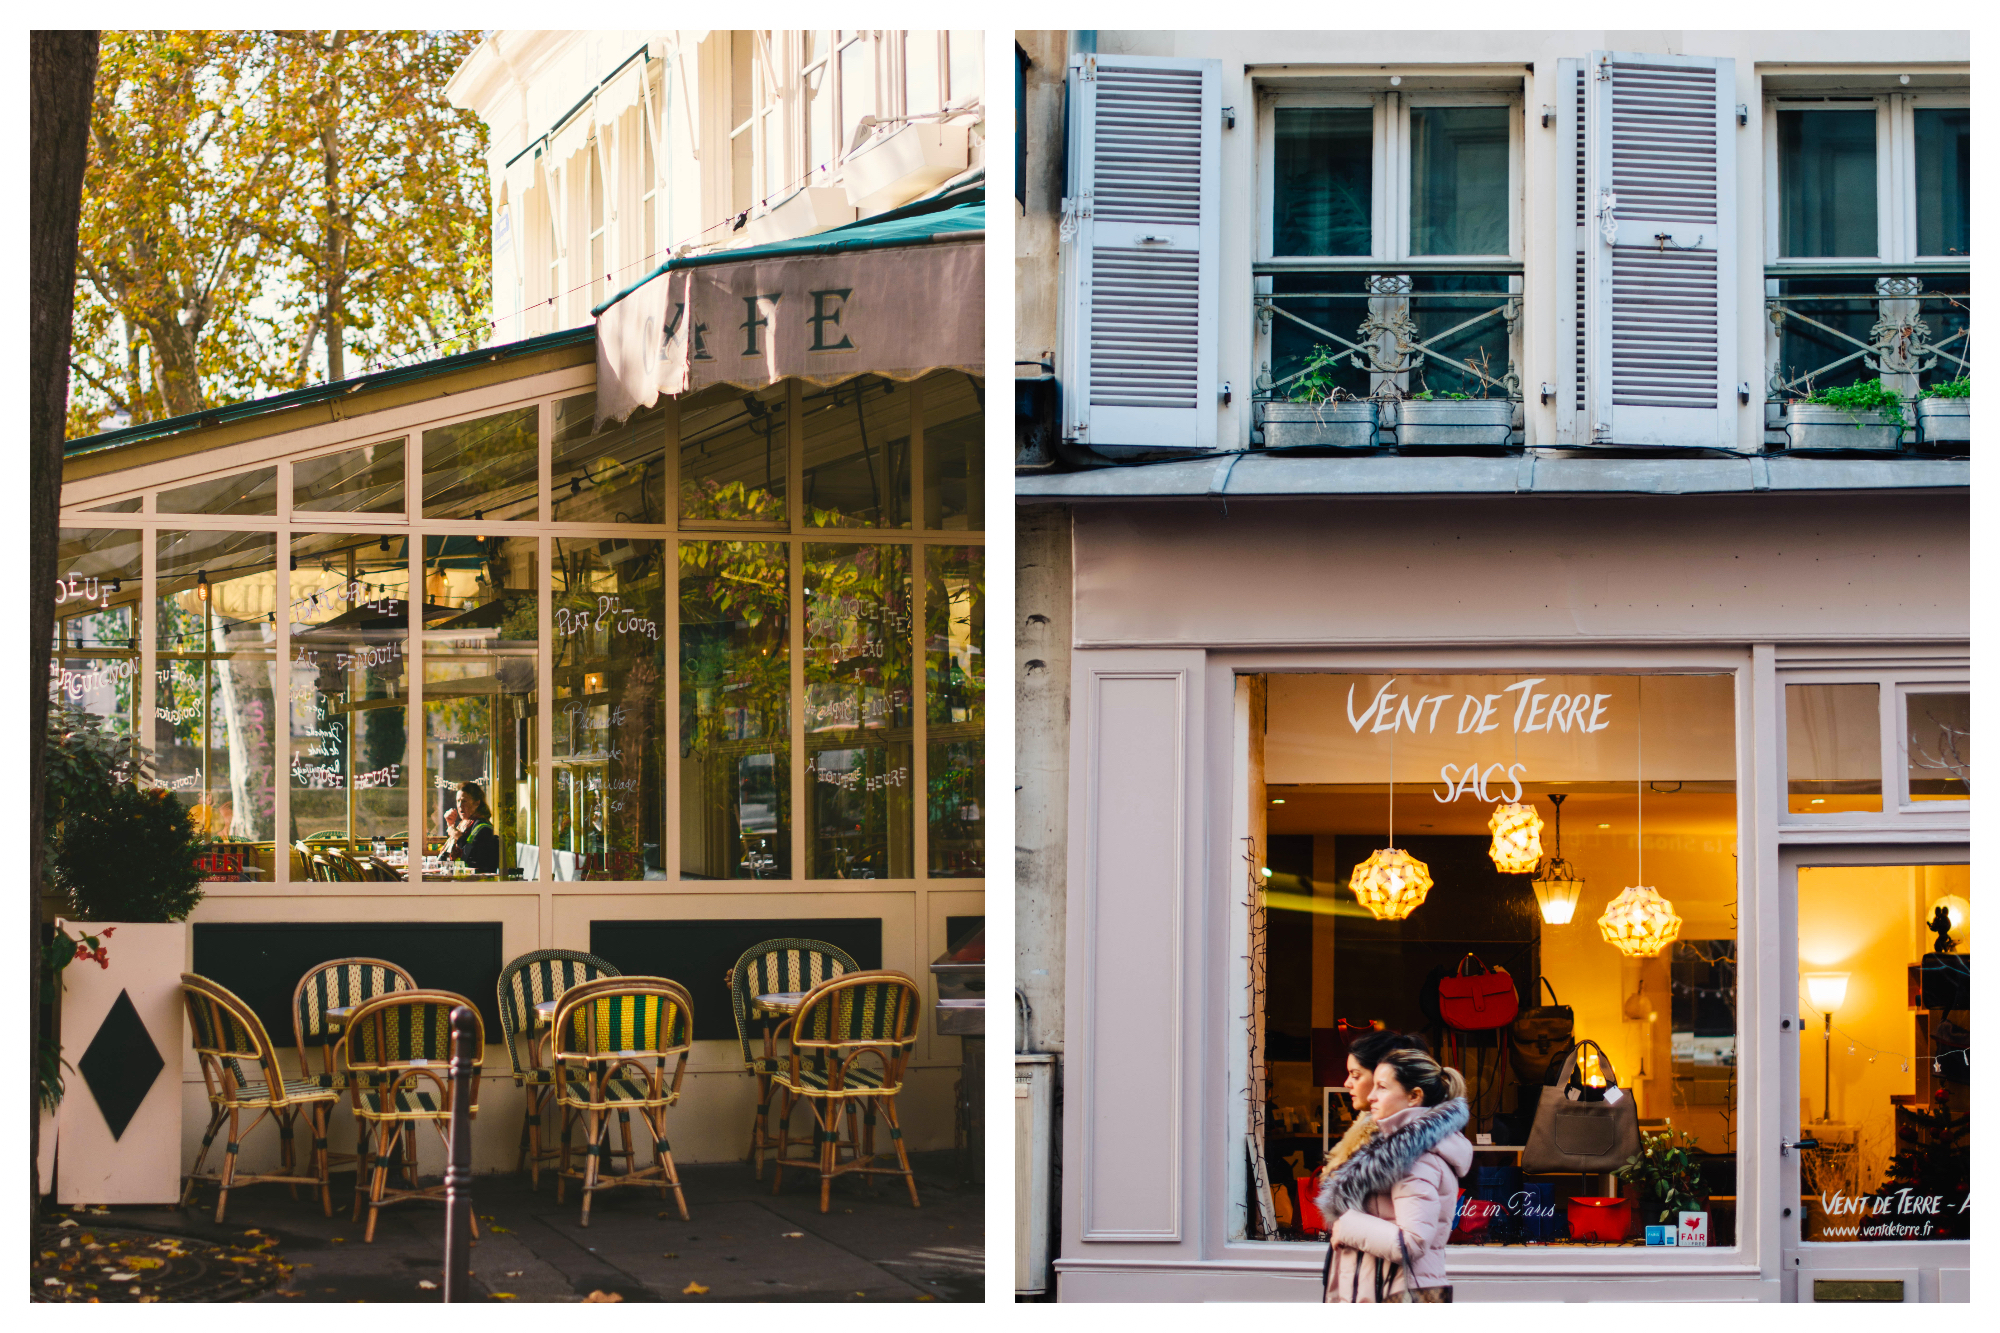 On left: Empty chairs on a café terrace await diners for an apéritif in Paris. On right: Vent de Terre, on Île Saint Louis in Paris, sells handbags designed in France.